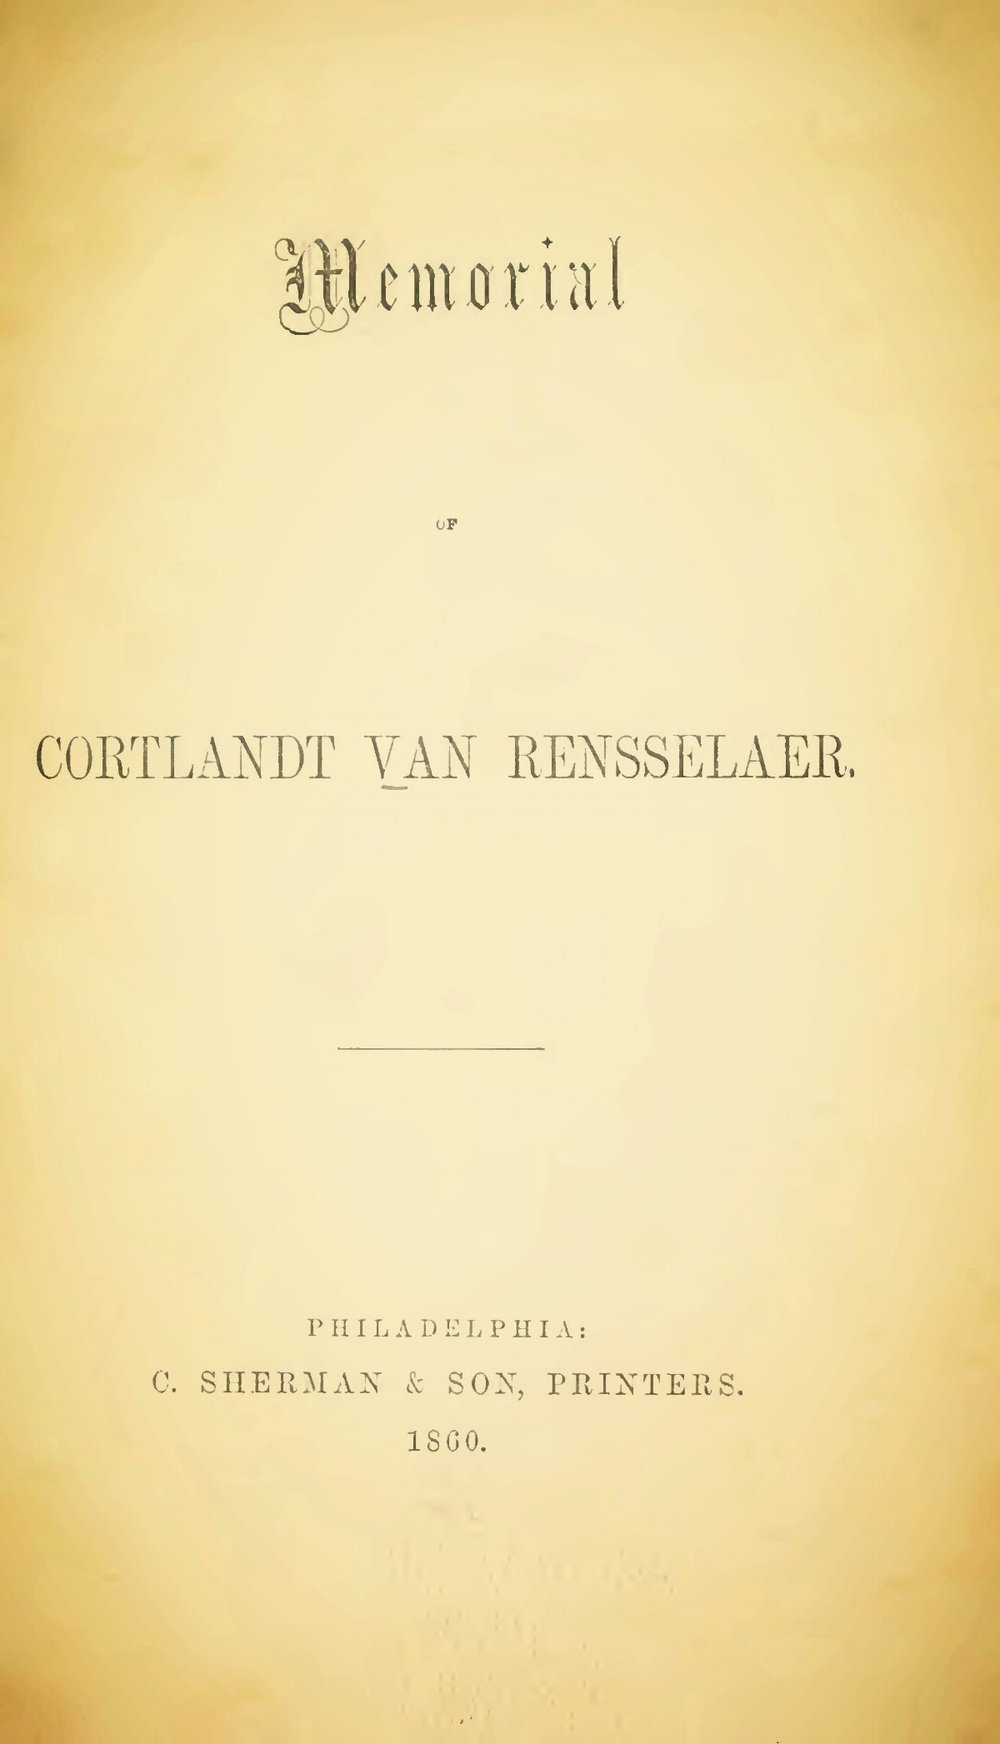 Hodge, Charles, Memorial of Cortlandt Van Rensselaer Title Page.jpg